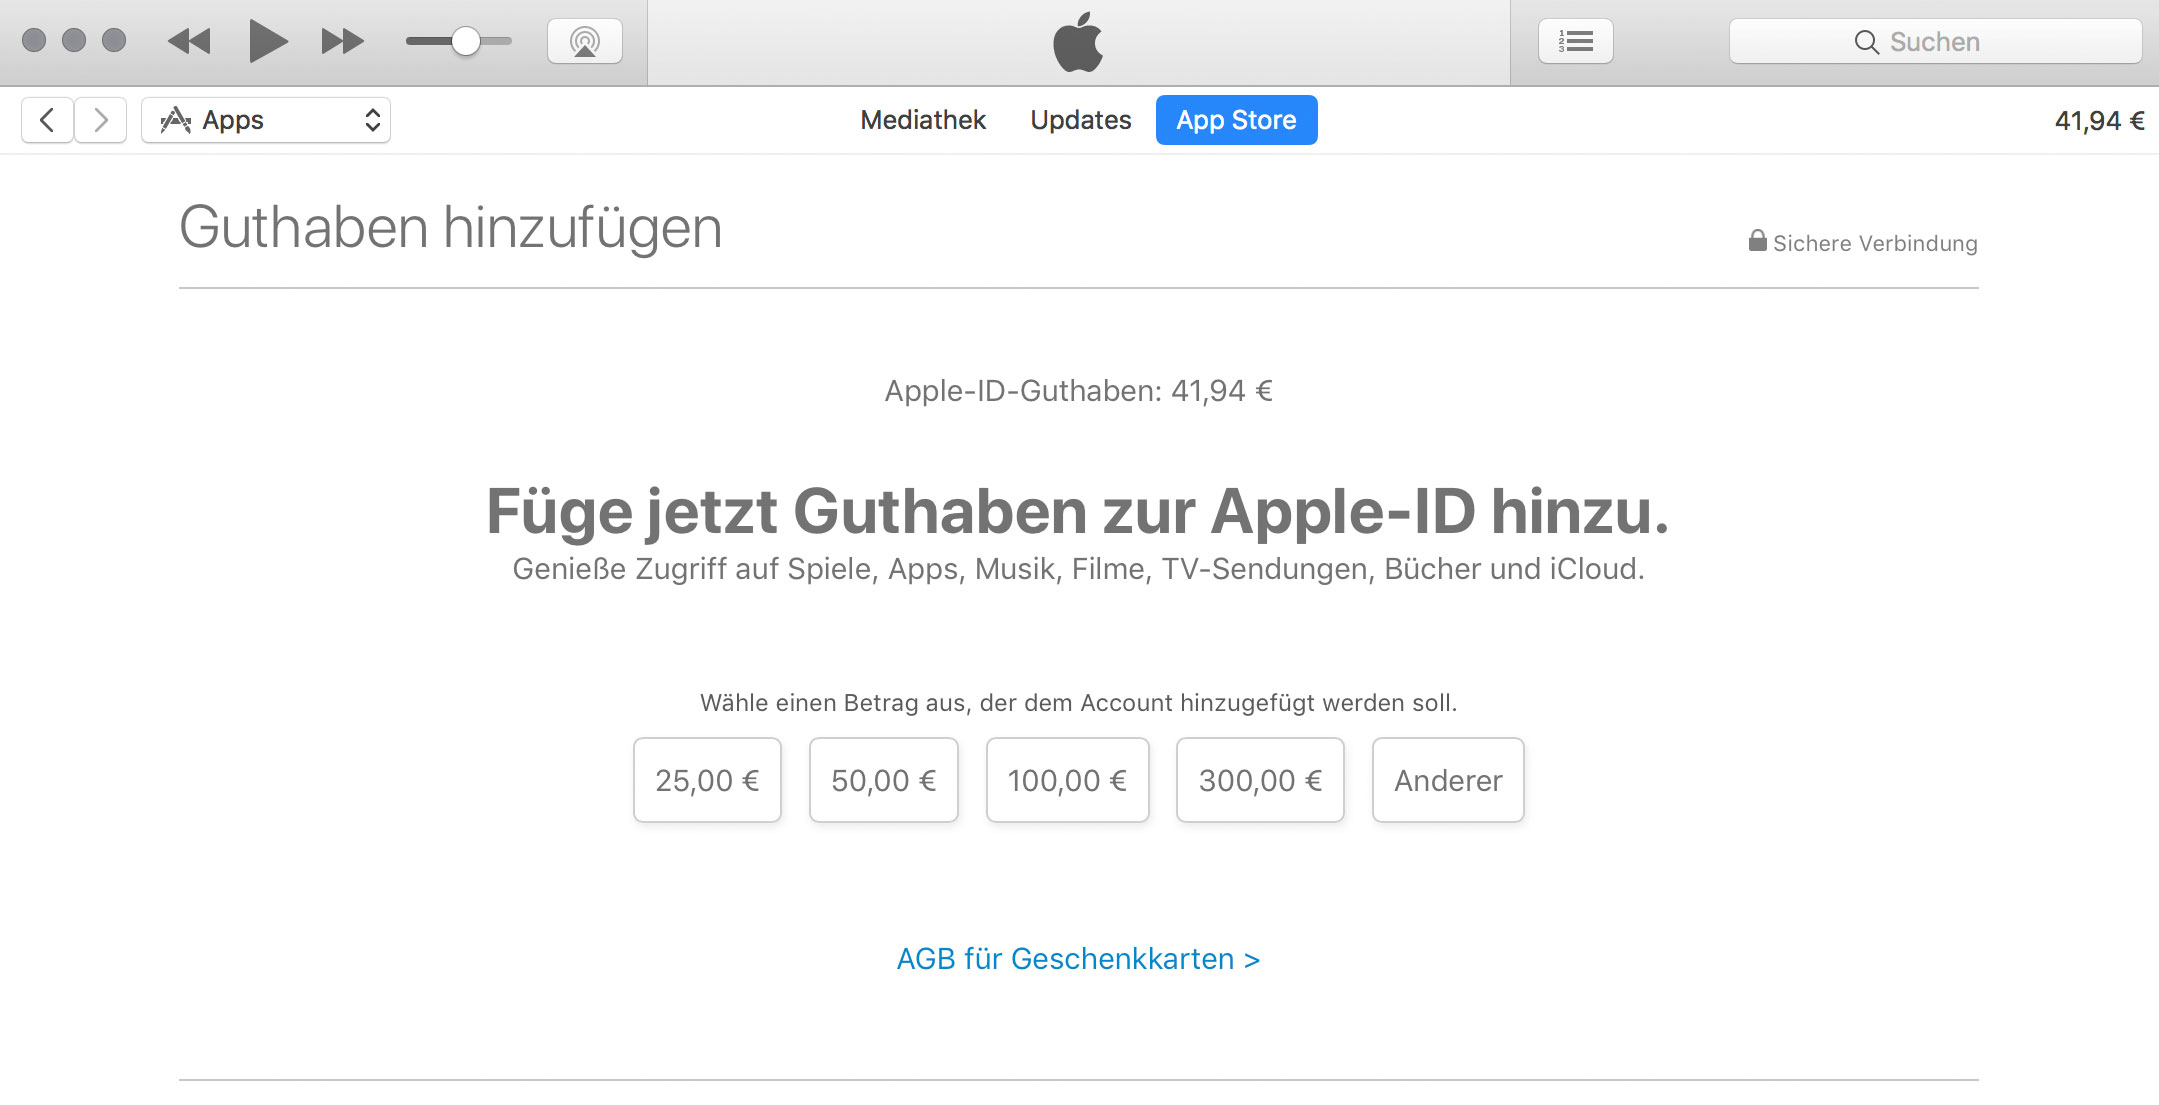 app store guthaben apple bietet neue schnell aufladung an. Black Bedroom Furniture Sets. Home Design Ideas